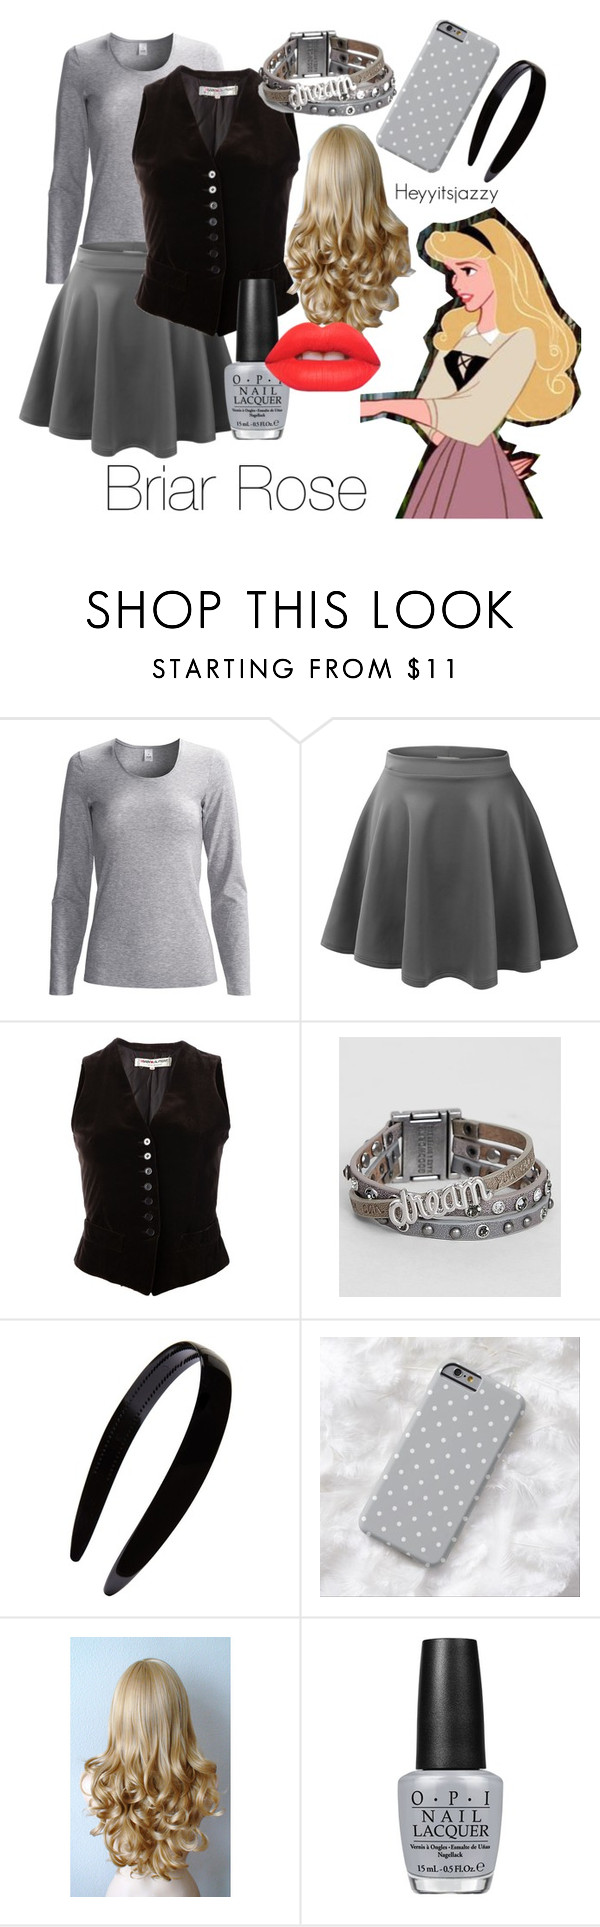 """""""Outfit 26 - Briar Rose"""" by heyyitsjazzy ❤ liked on Polyvore featuring CALIDA, LE3NO, Yves Saint Laurent, Good Work(s), France Luxe, Disney, OPI and Lime Crime"""